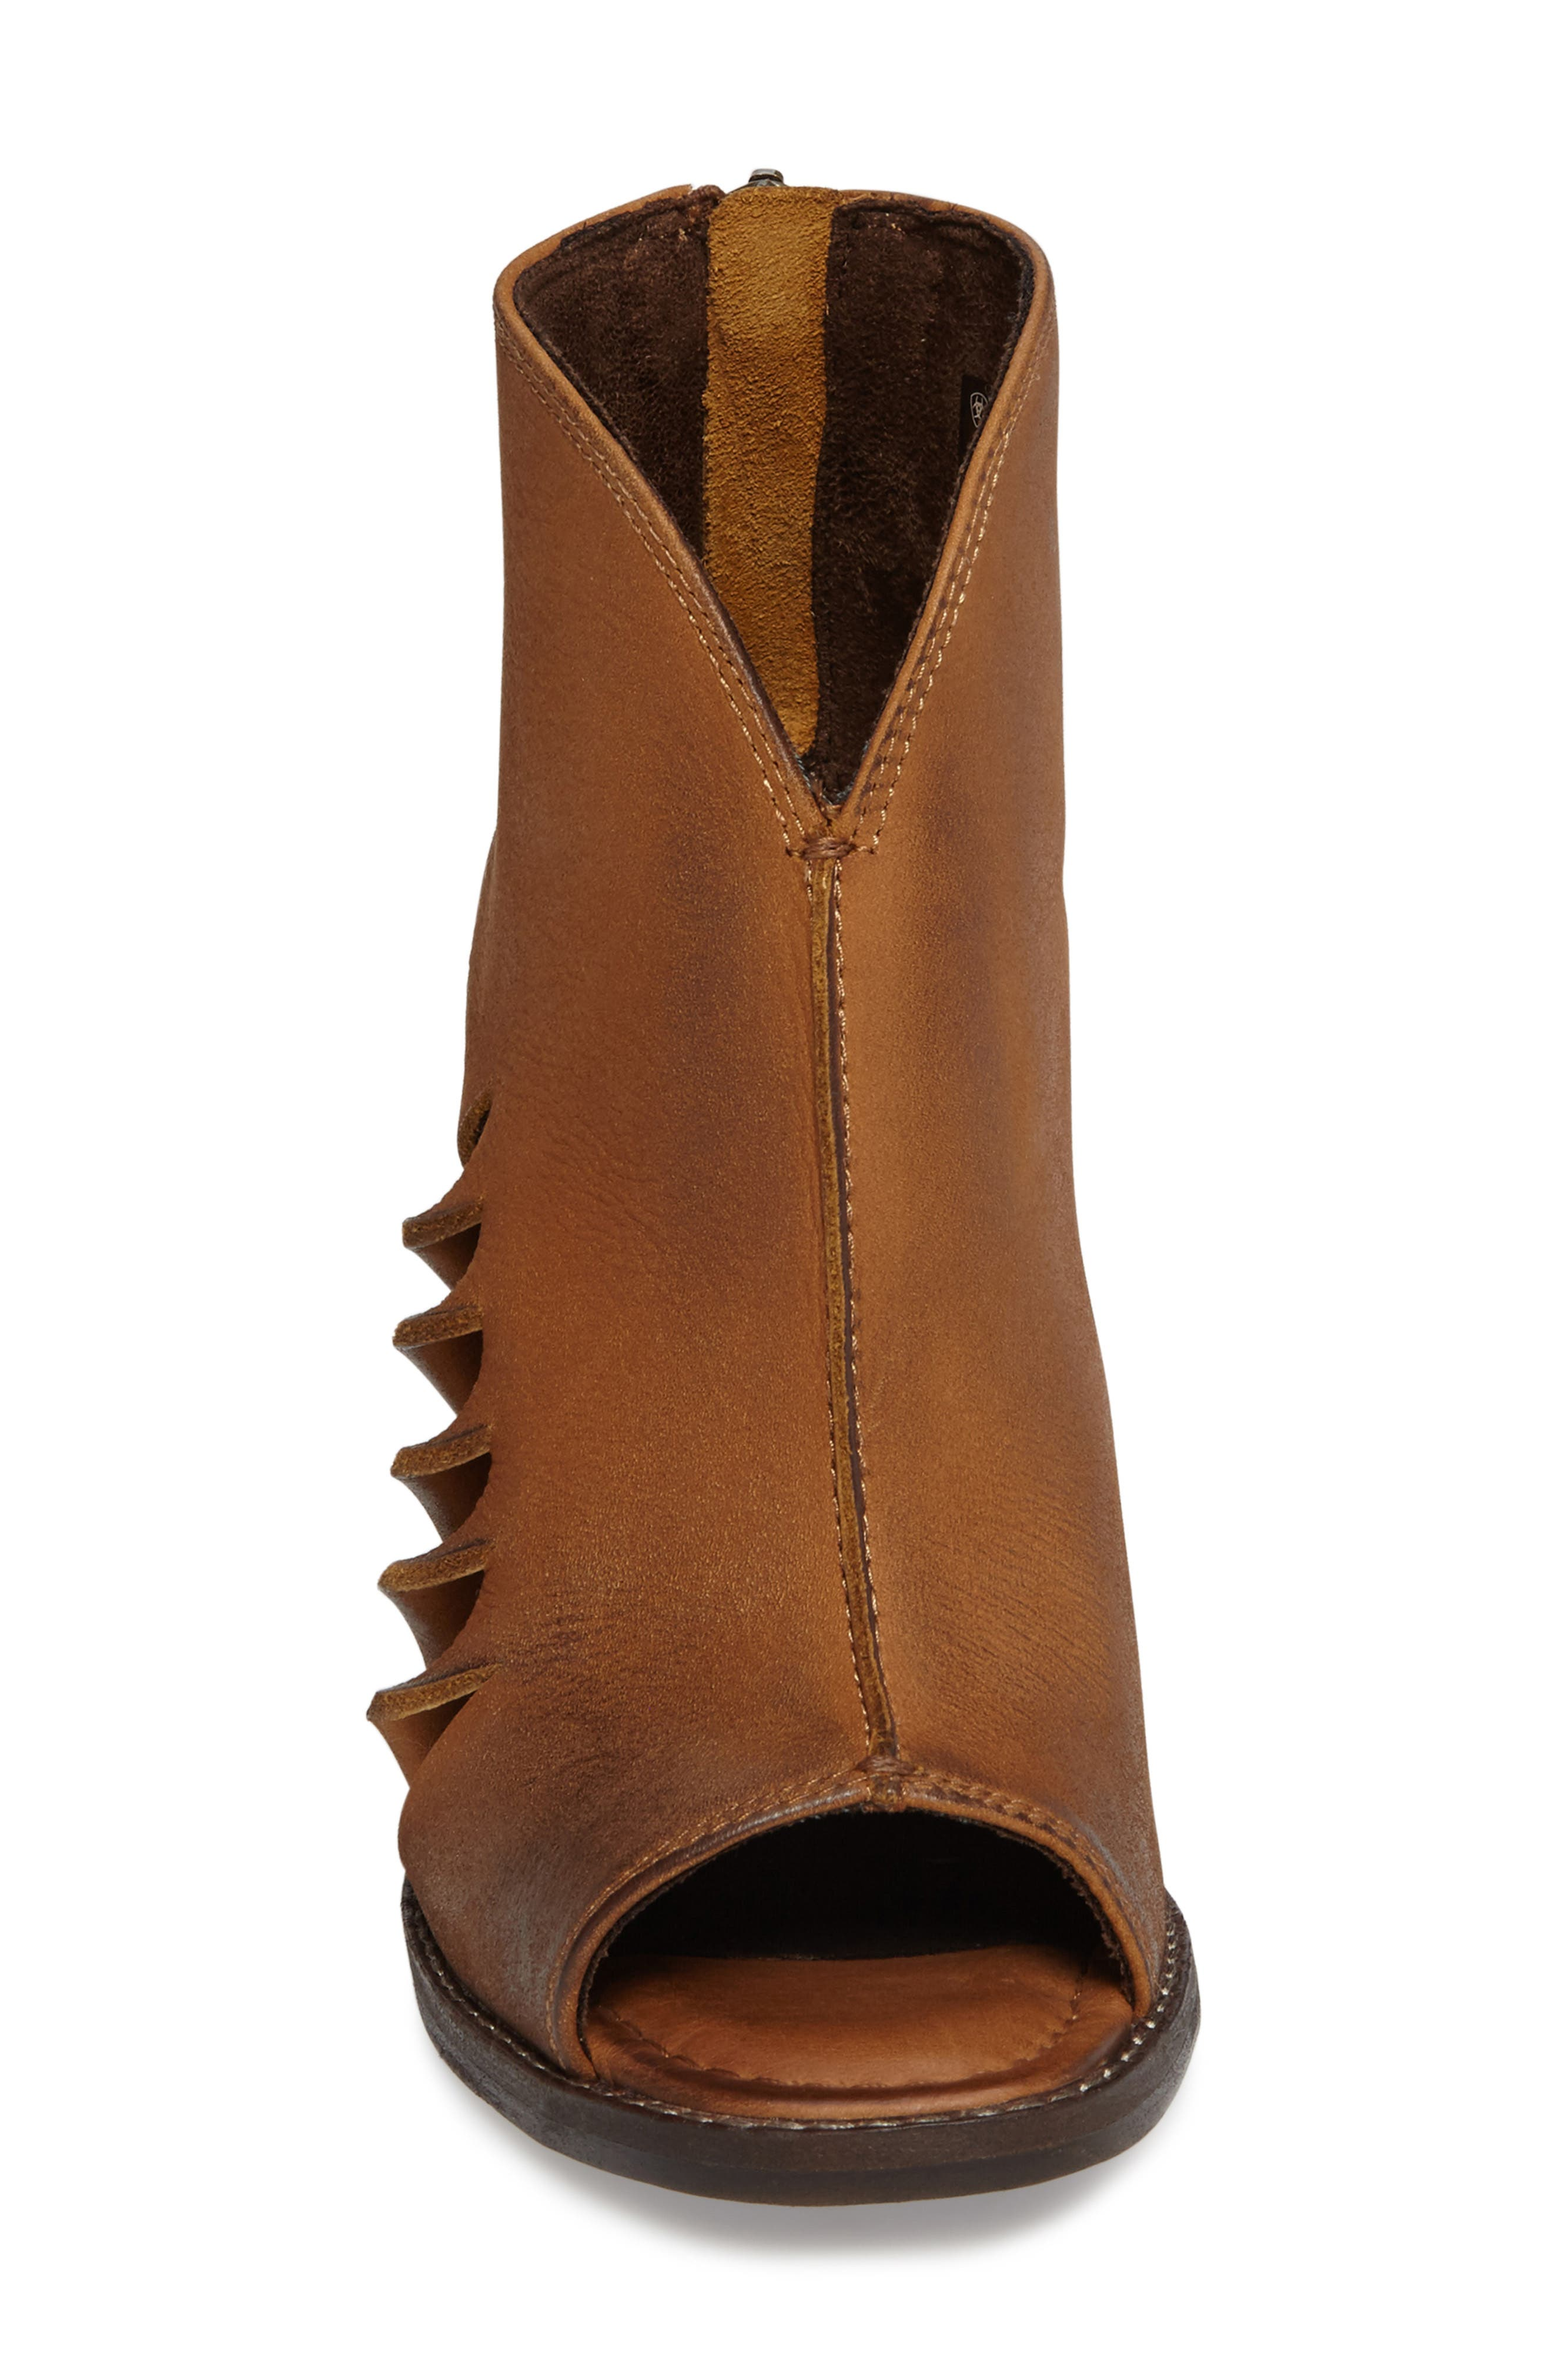 Lindsley Peep Toe Bootie,                             Alternate thumbnail 3, color,                             Tennessee Tan Leather